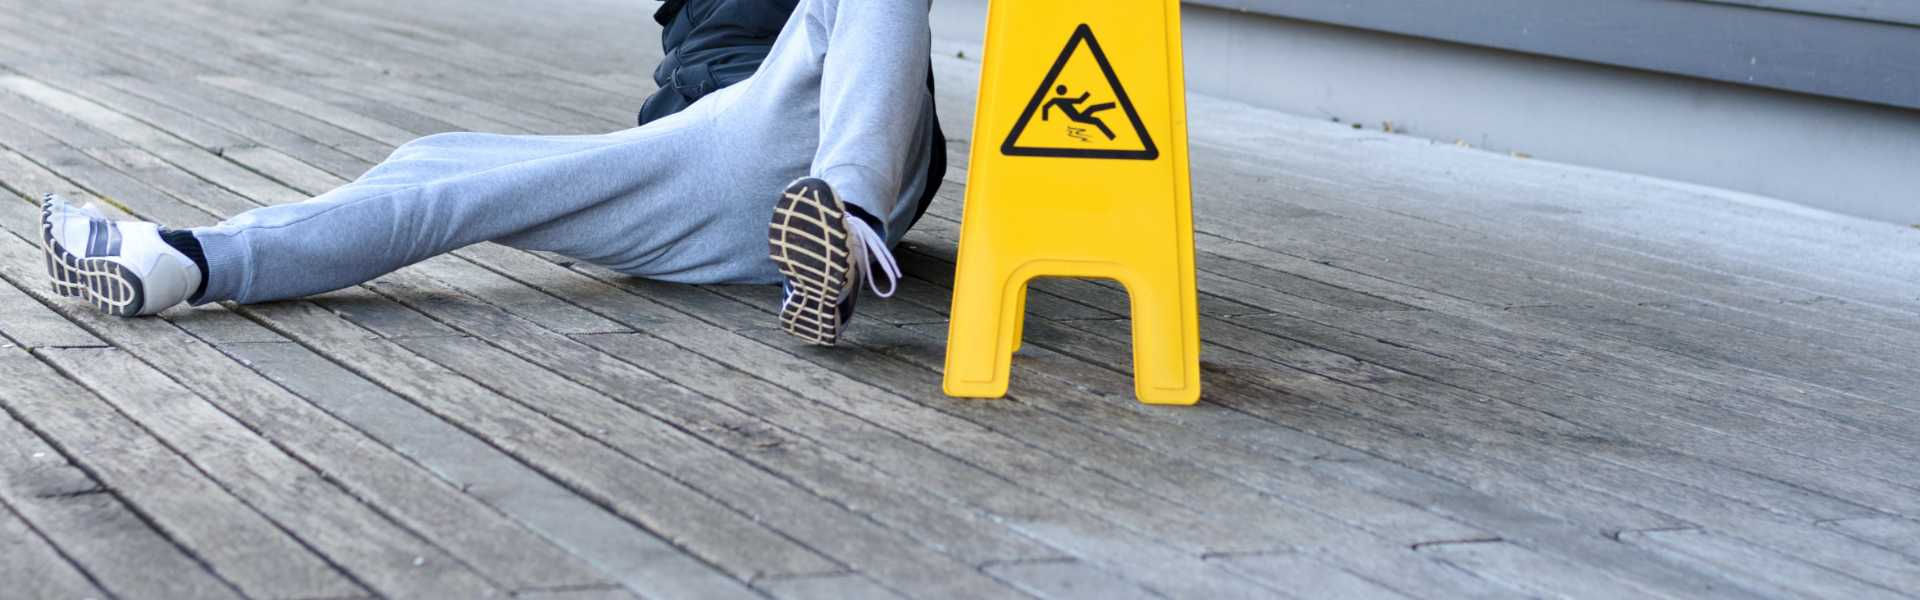 A person on the ground near a warning sign after a slip and fall accident